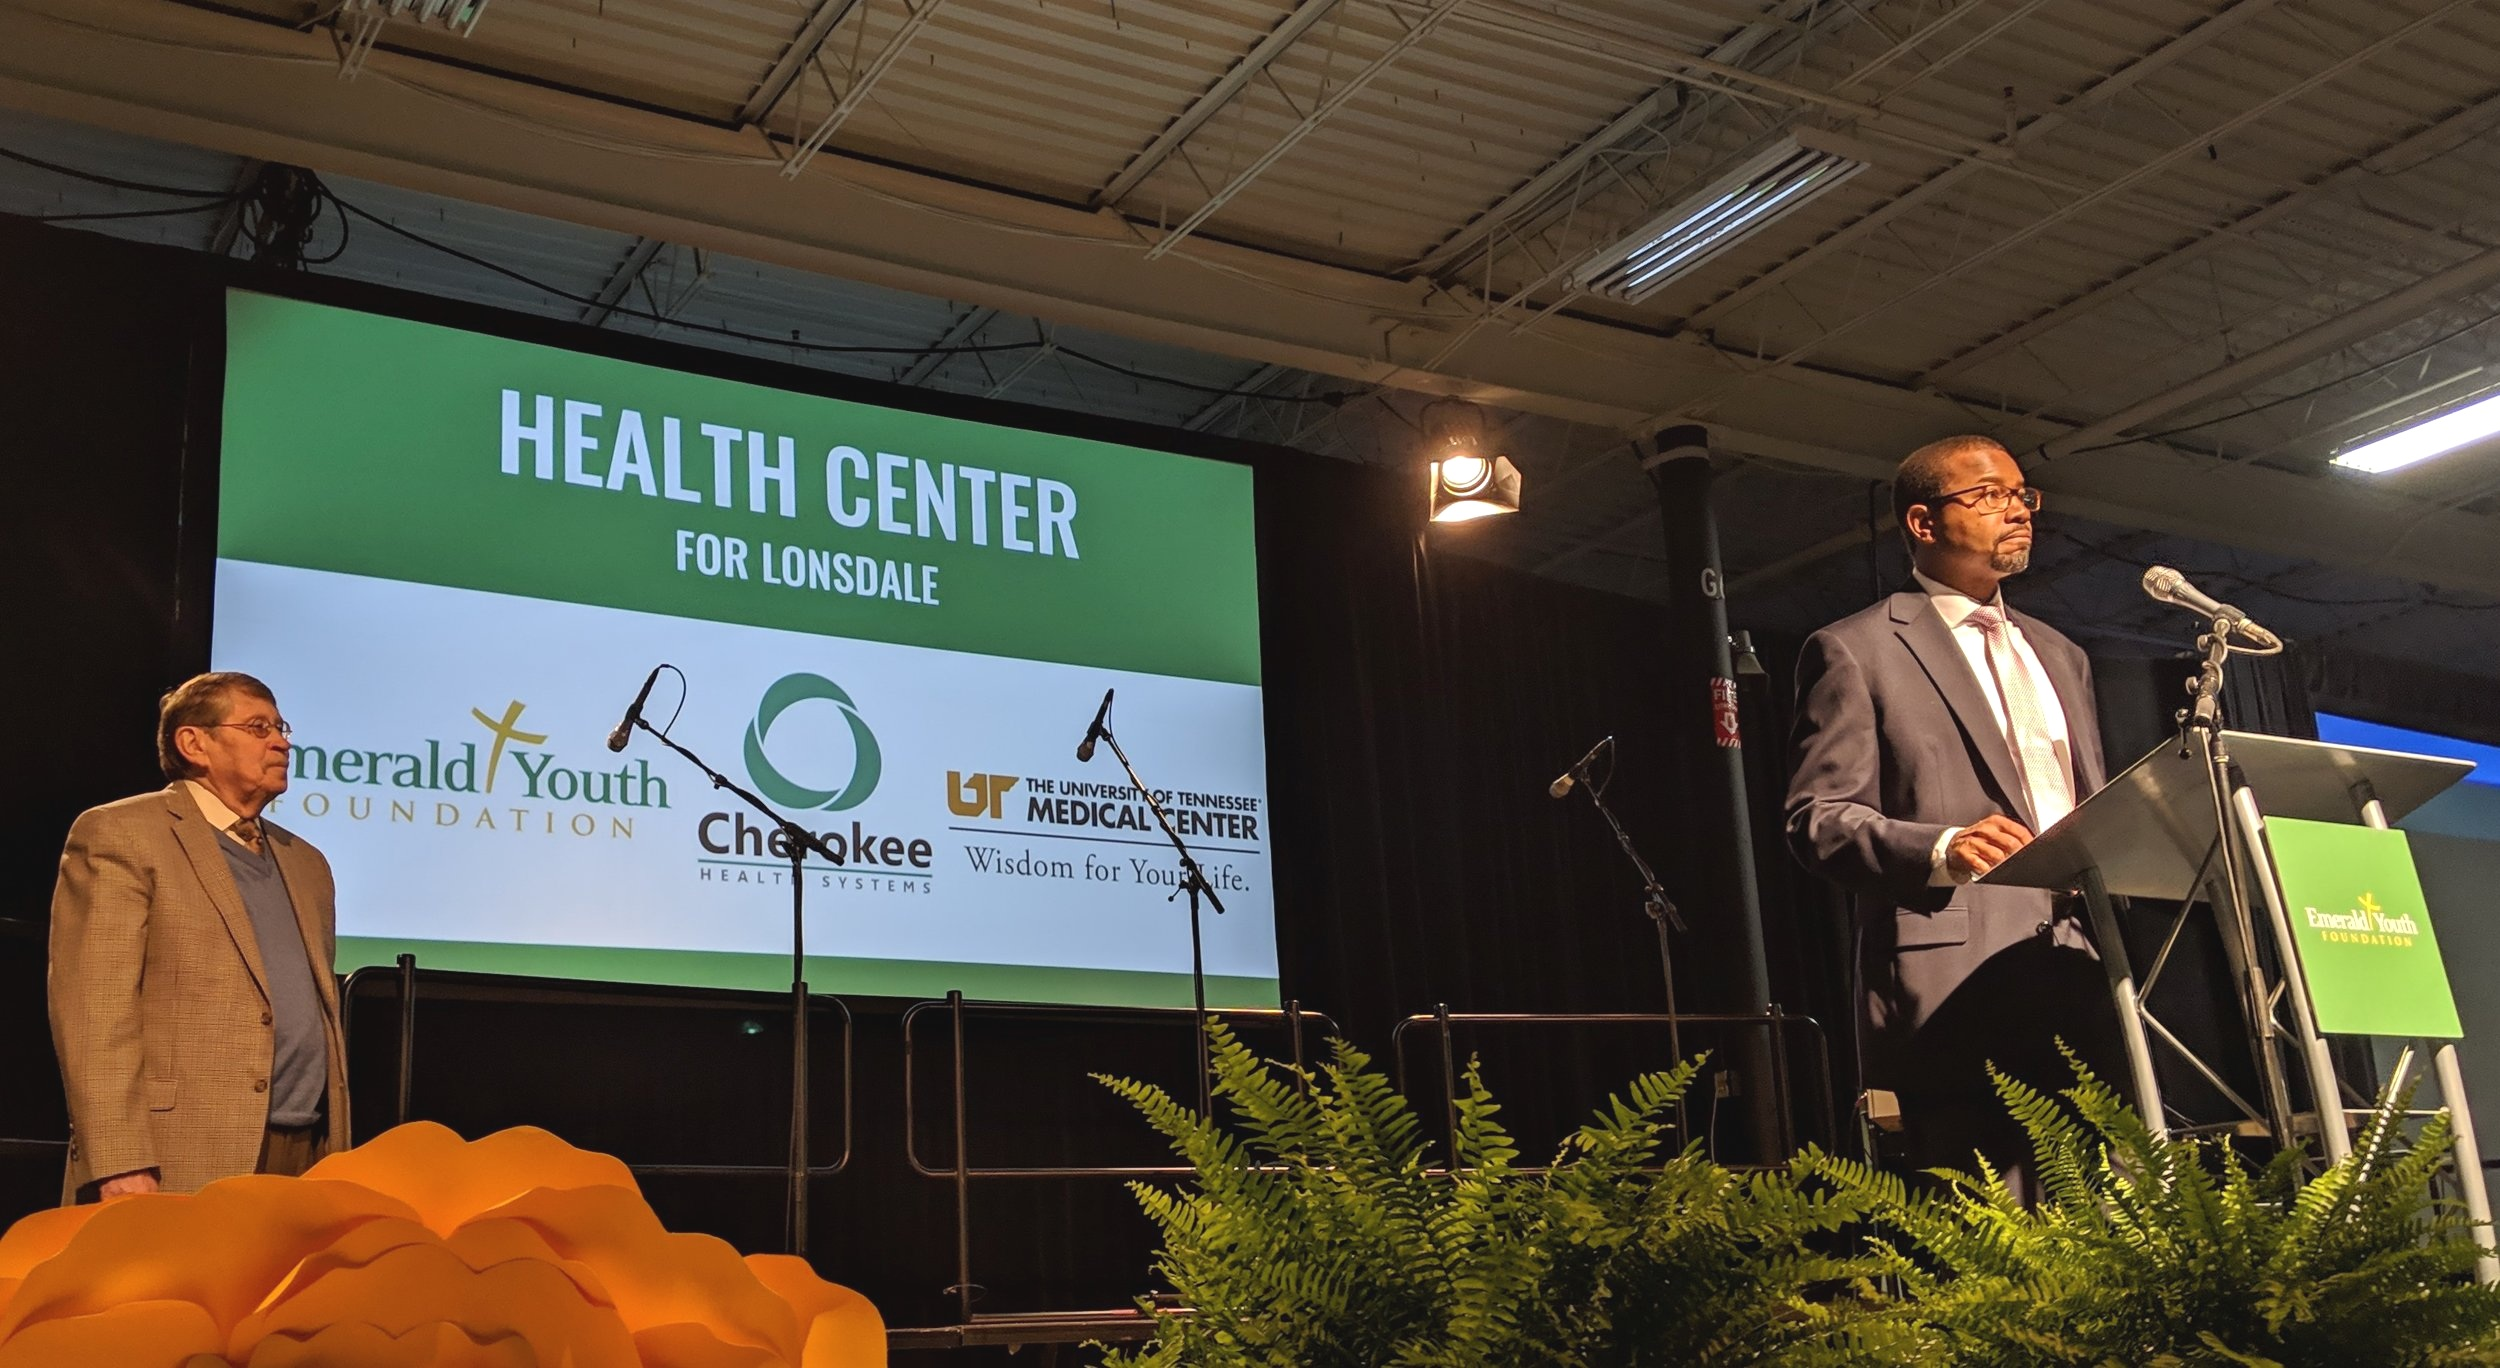 Dr. Keith Gray, senior vice president and chief medical officer of UT Medical Center, announces a collaboration with Emerald Youth Foundation, Cherokee Health Systems and UT Medical Center to open a Health Center in Lonsdale. Dr. Dennis Freeman, CEO of Cherokee Health Systems, looks on.